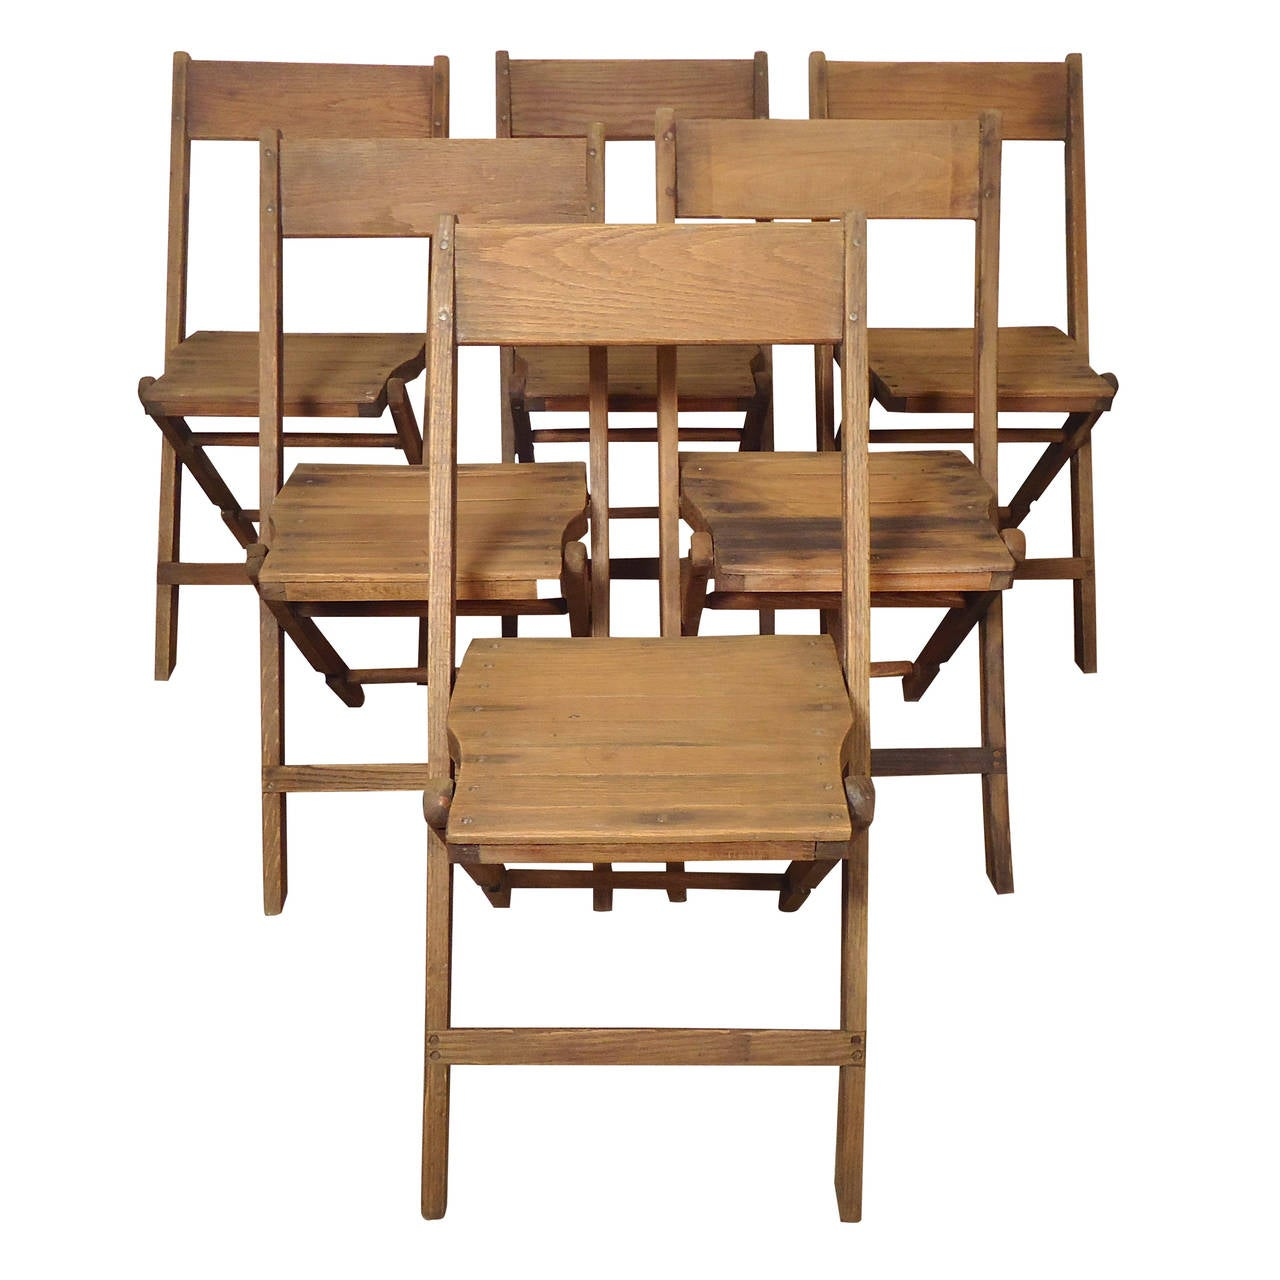 Classic All Wood Folding Chairs For Sale at 1stdibs